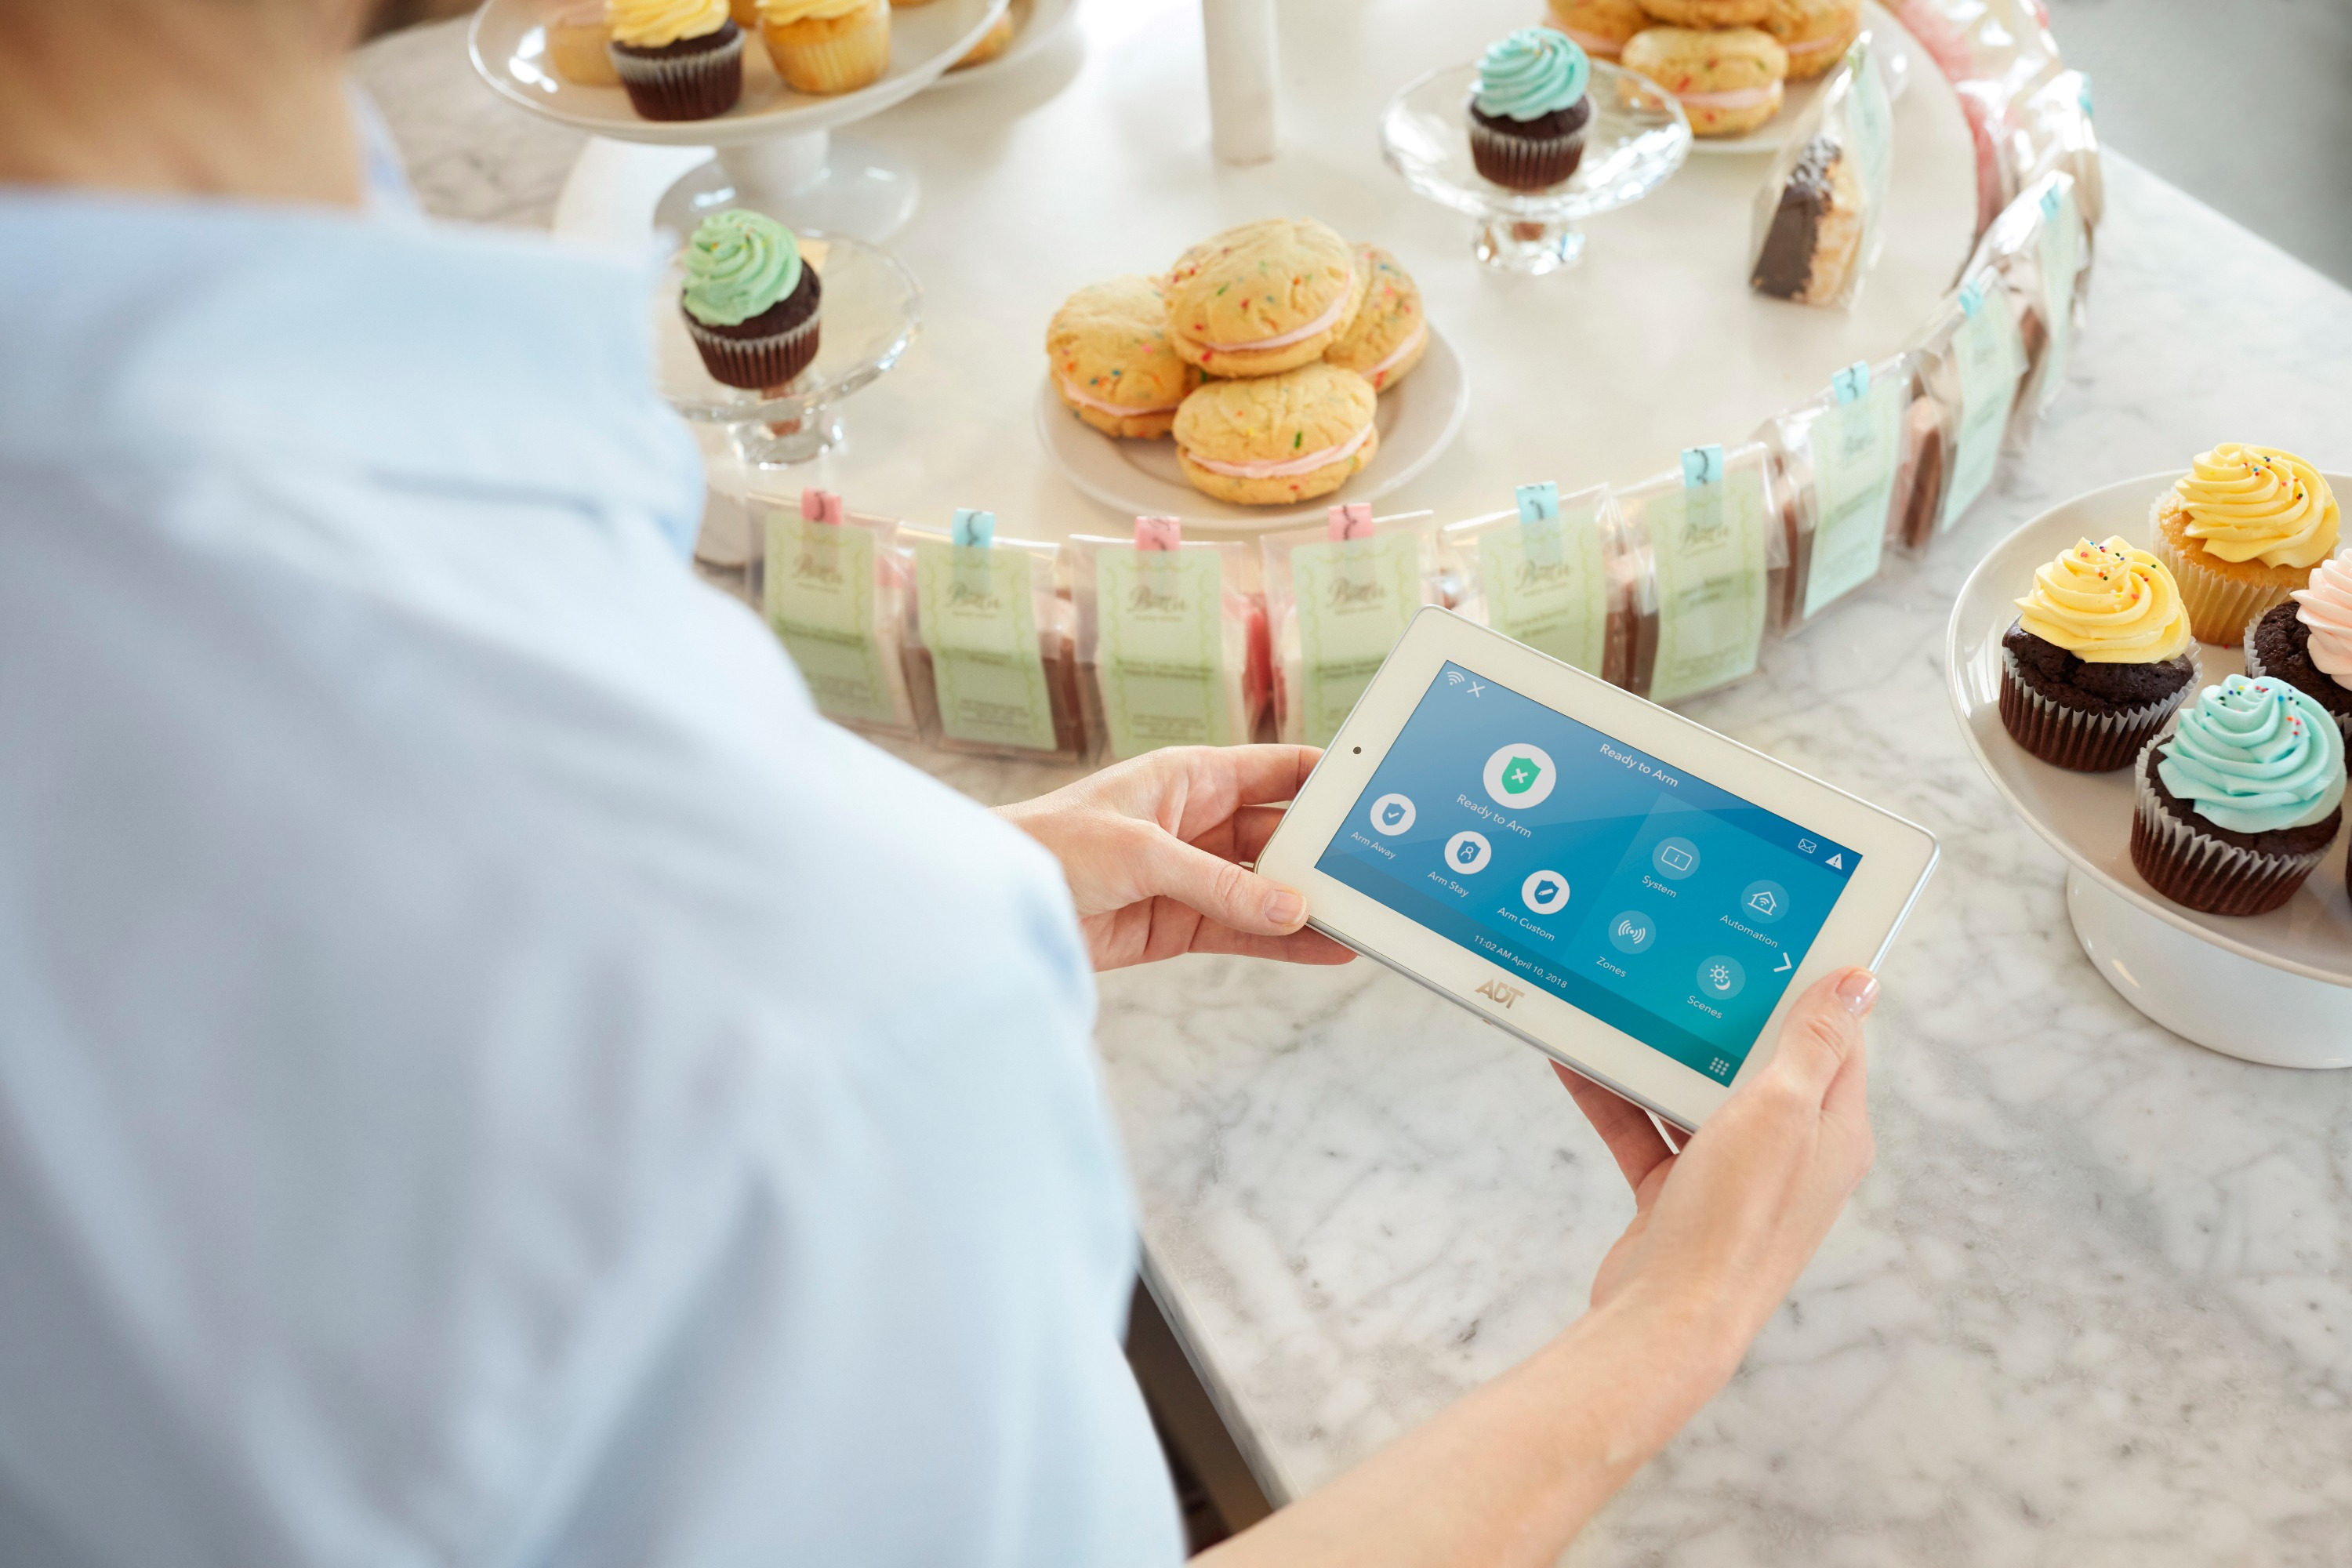 A person wearing a light blue shirt holds an ADT home security device while standing near a display of yellow and blue cupcakes.